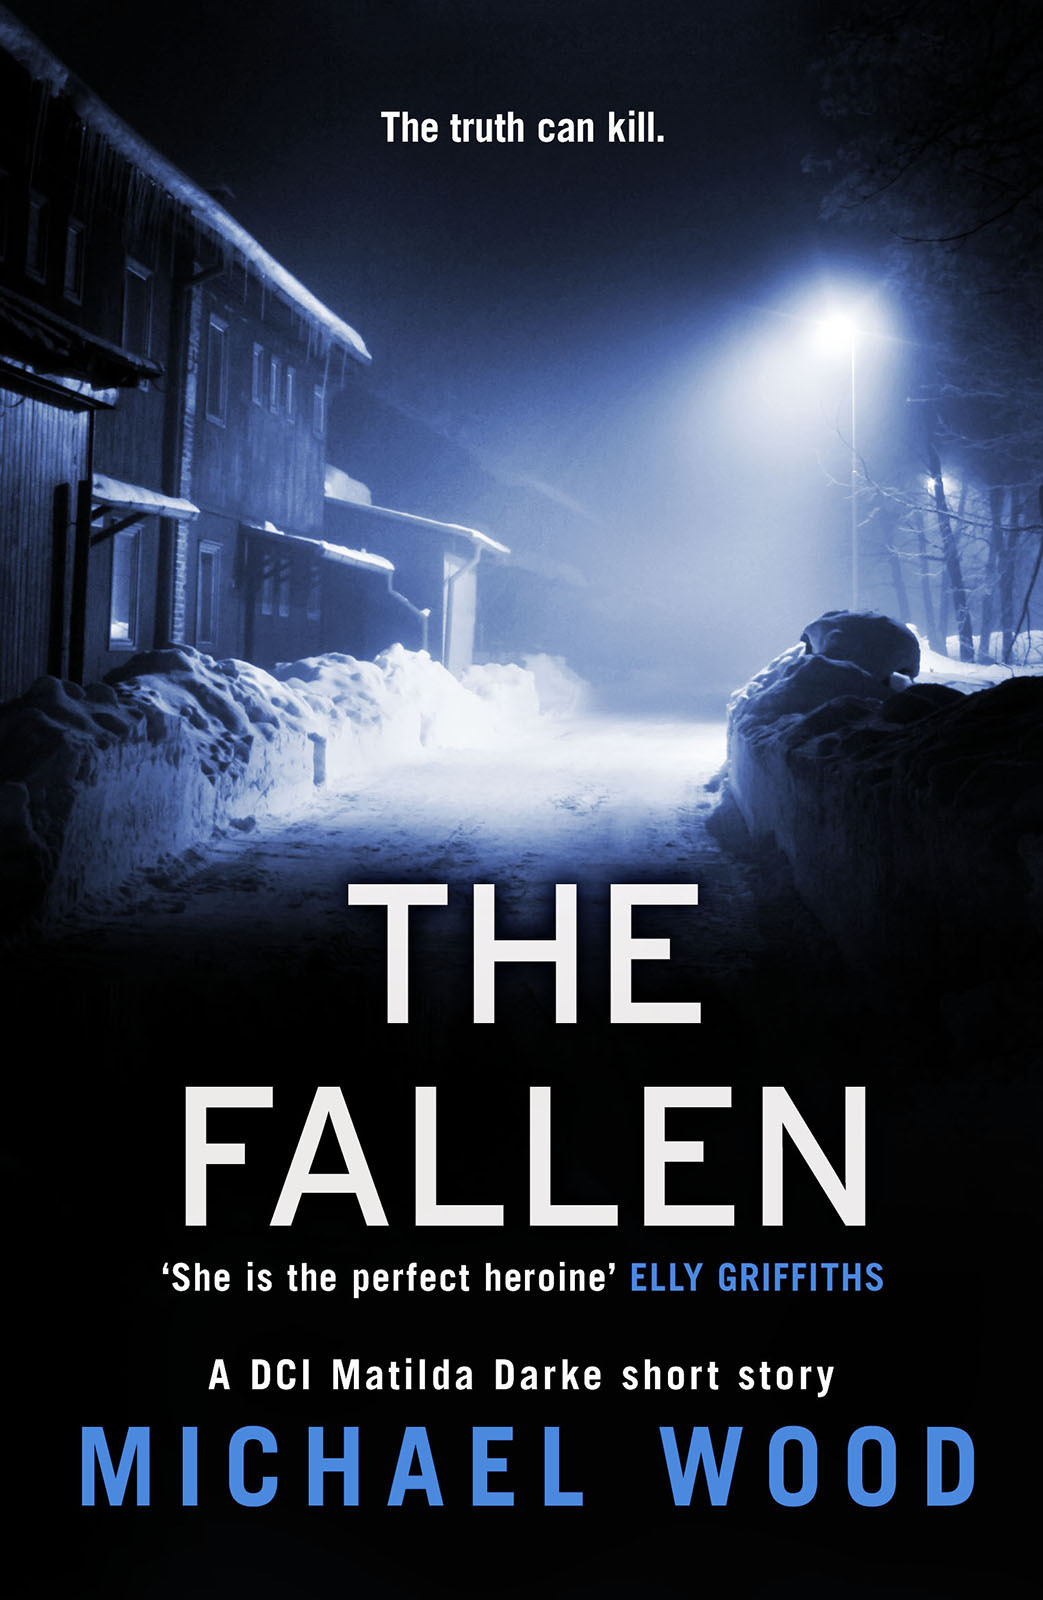 Michael Wood The Fallen: A DCI Matilda Darke short story darke